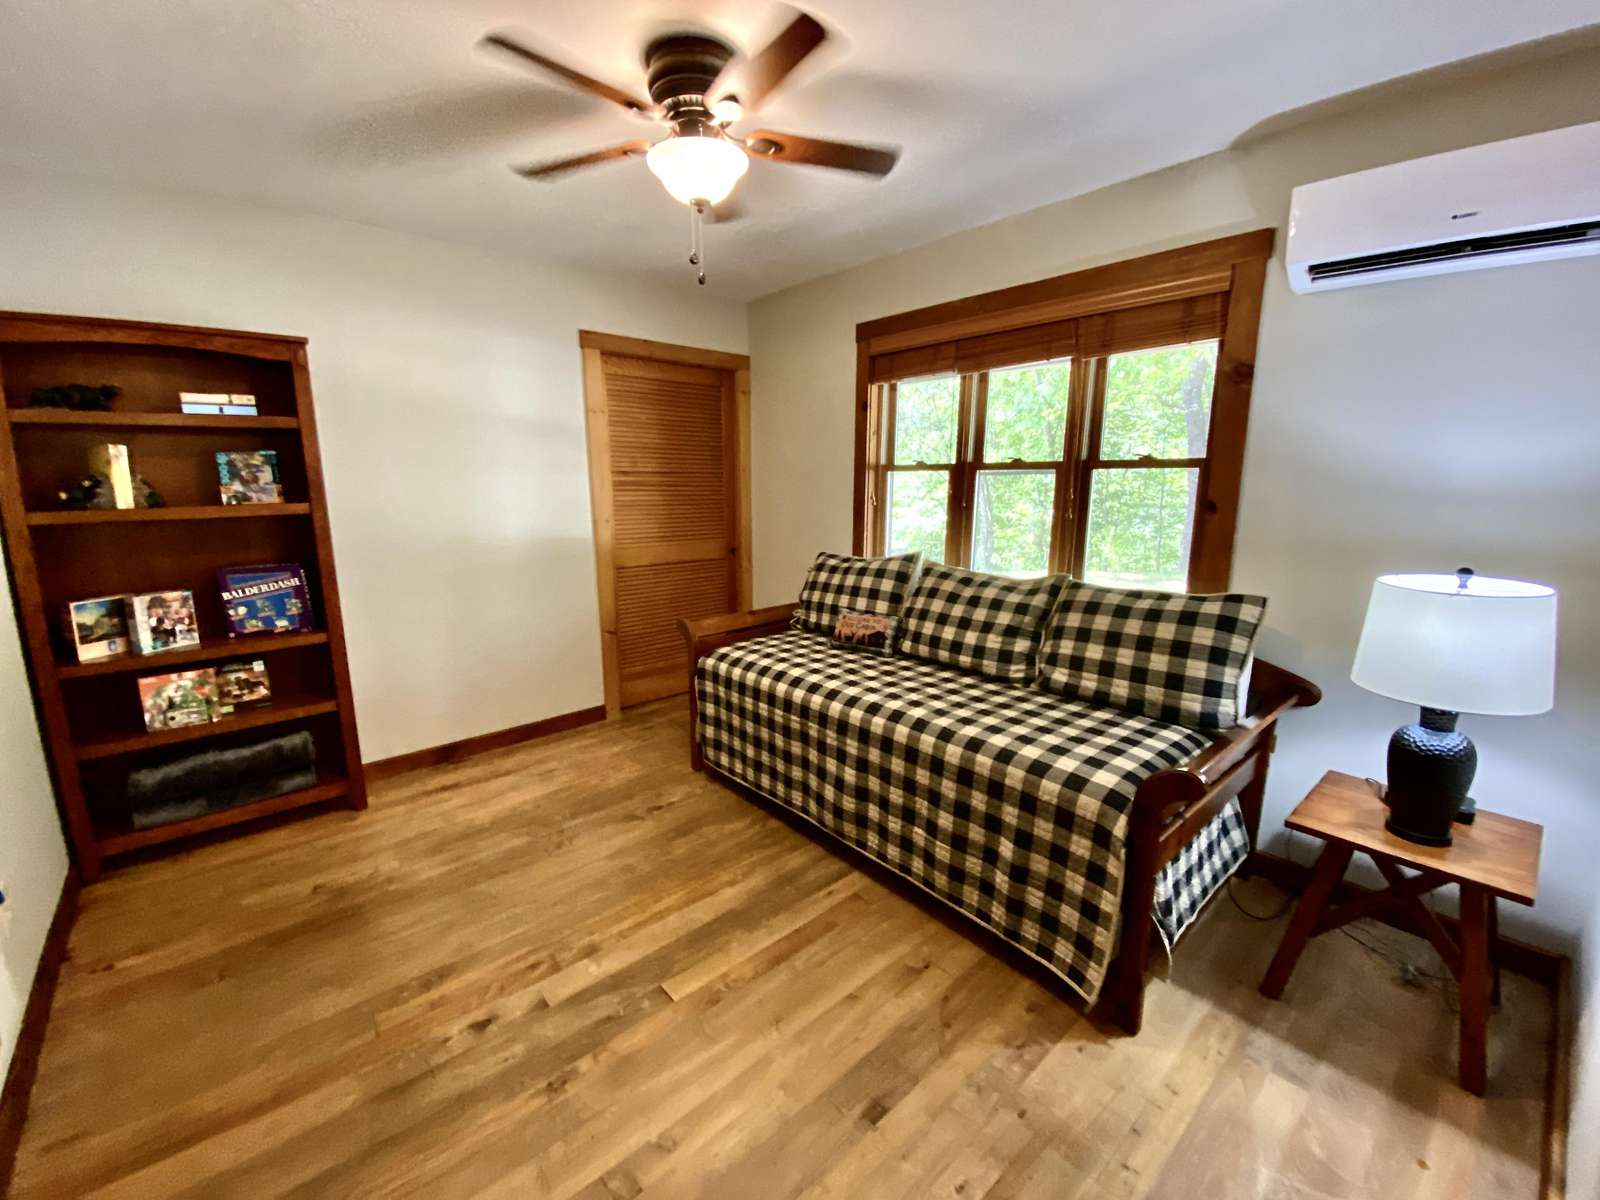 The 3rd Bedroom offers a Twin Day Bed, with a Twin Trundle Bed underneath.